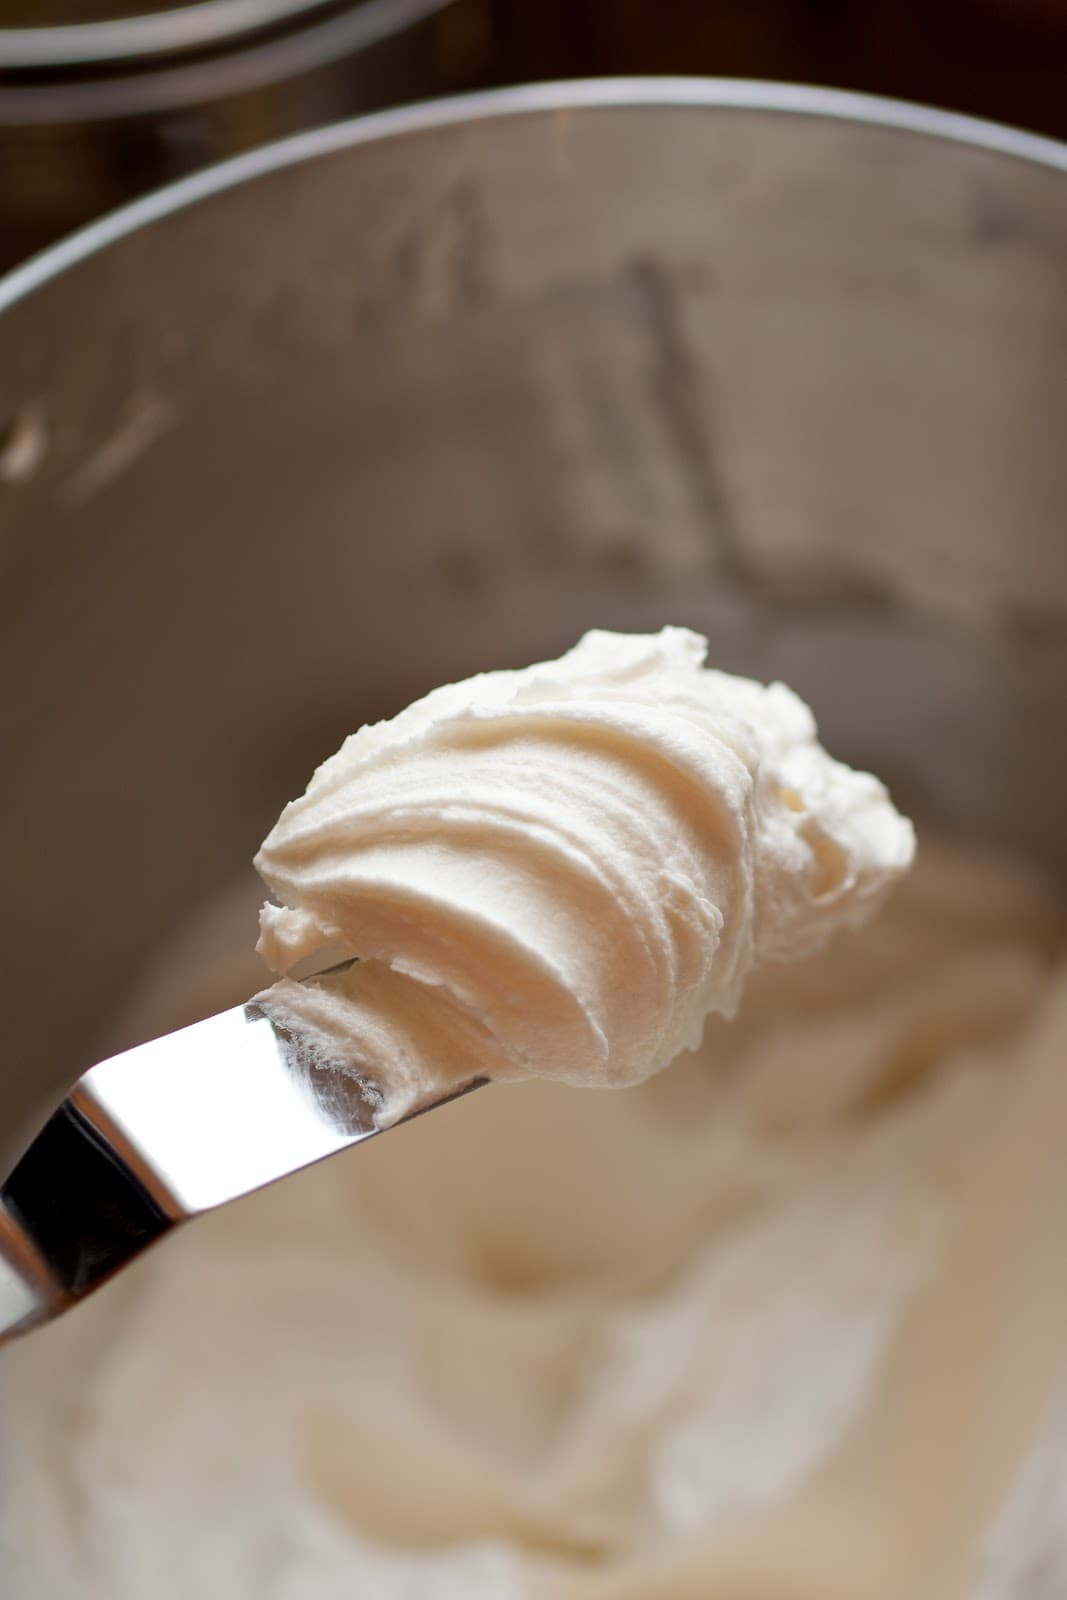 The best buttercream frosting on an offset spatula.